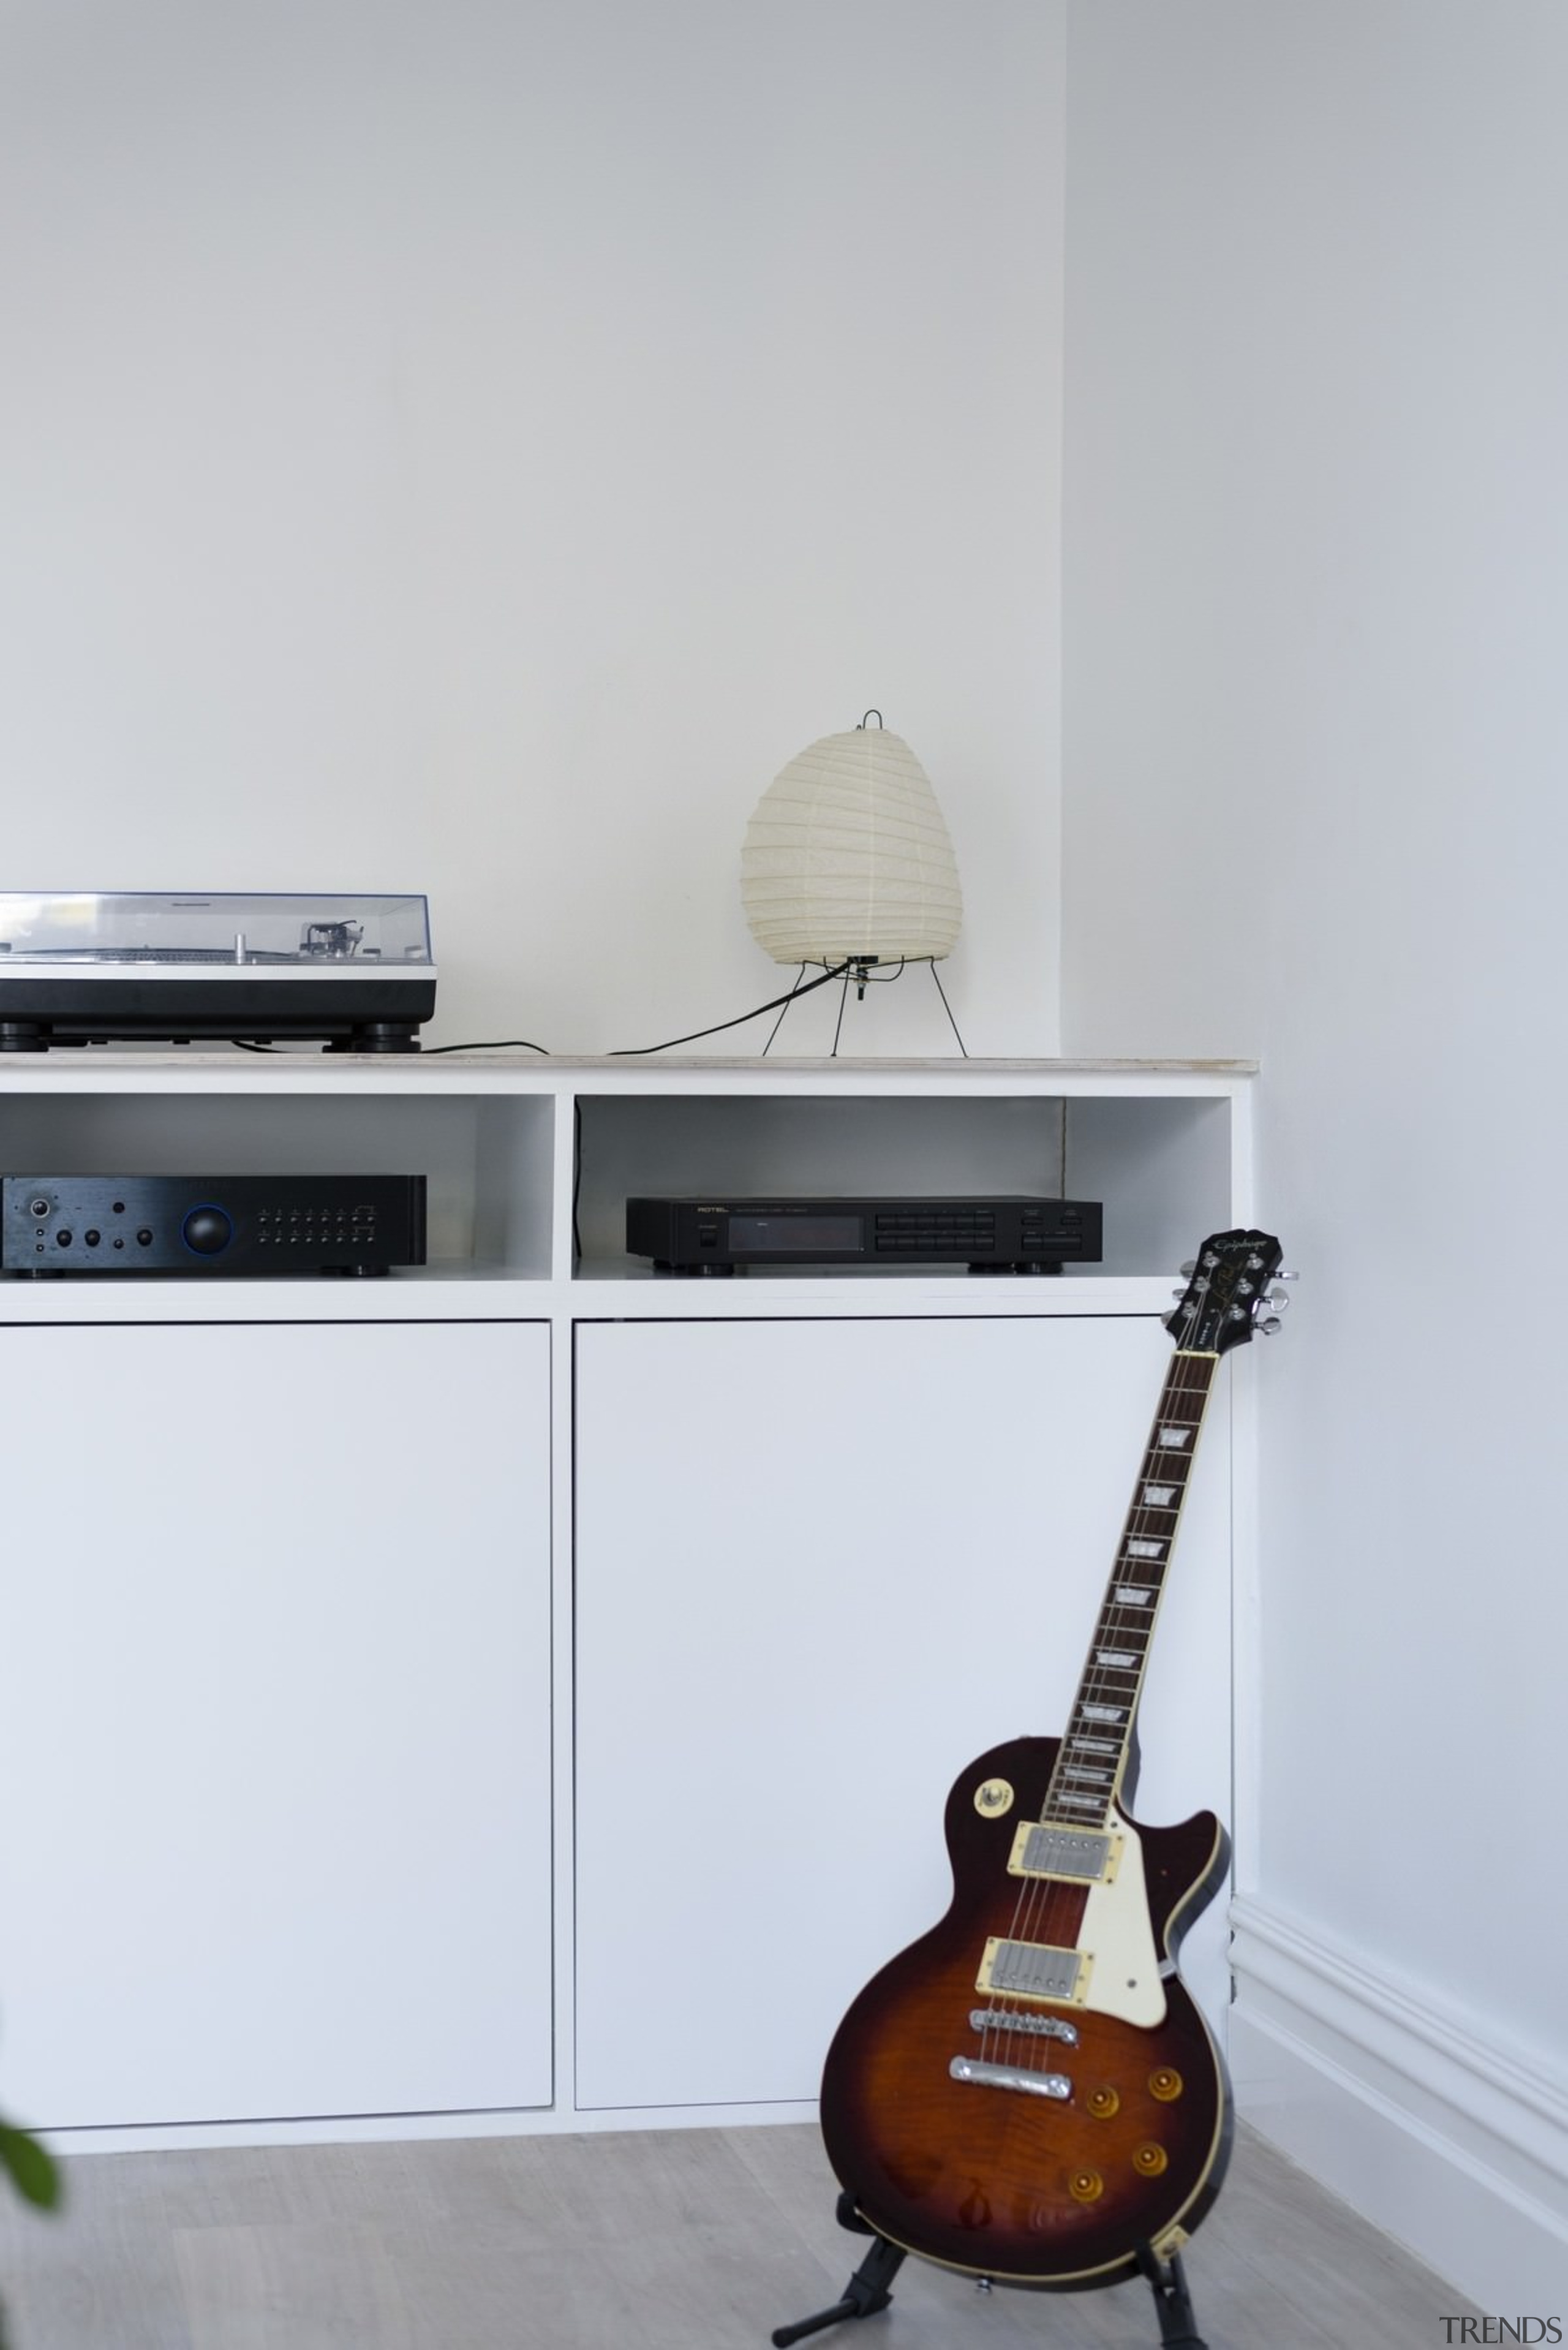 This entertainment centre has space for all the furniture, guitar, musical instrument, musical instrument accessory, plucked string instruments, product design, string instrument, white